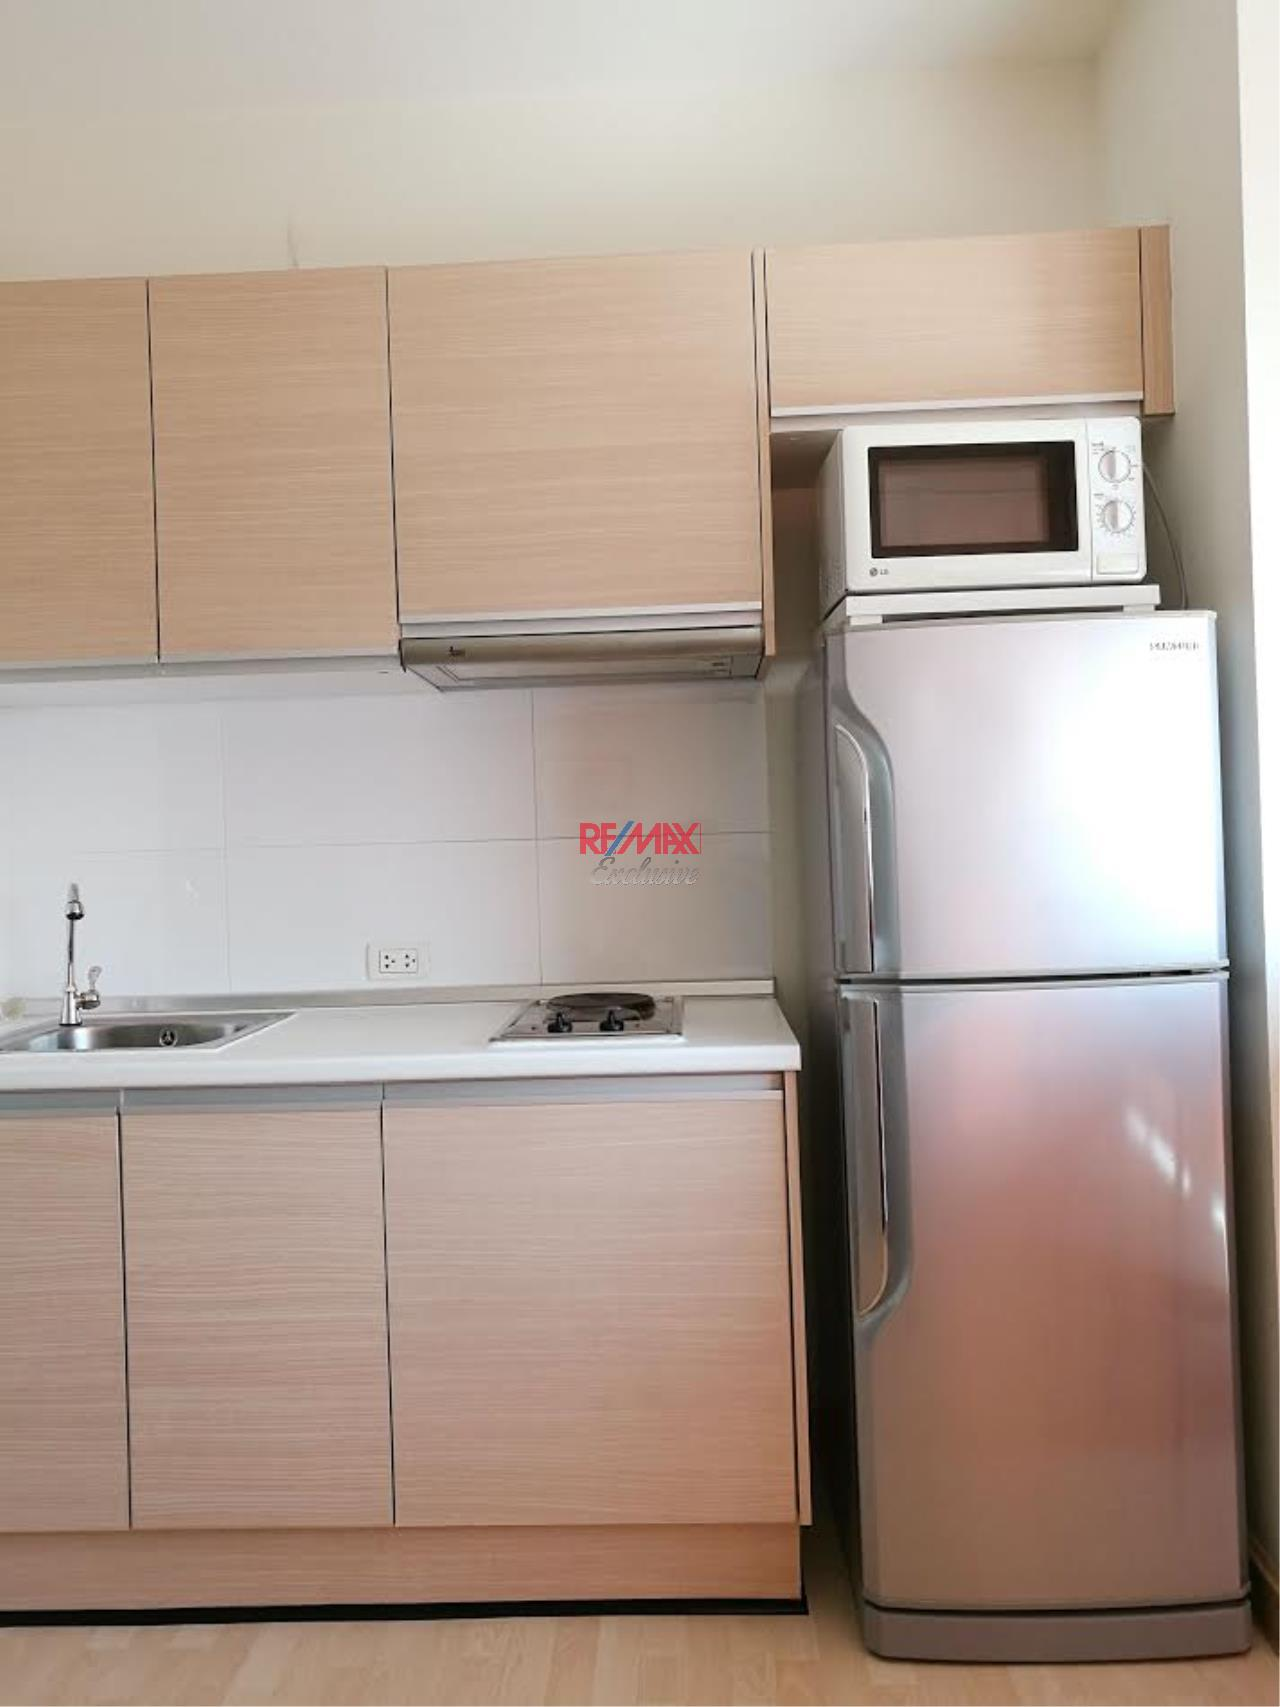 RE/MAX Exclusive Agency's Rhythm Ratchada 1 Bedroom with Sky Kitchen for Rent 20,000 THB 9